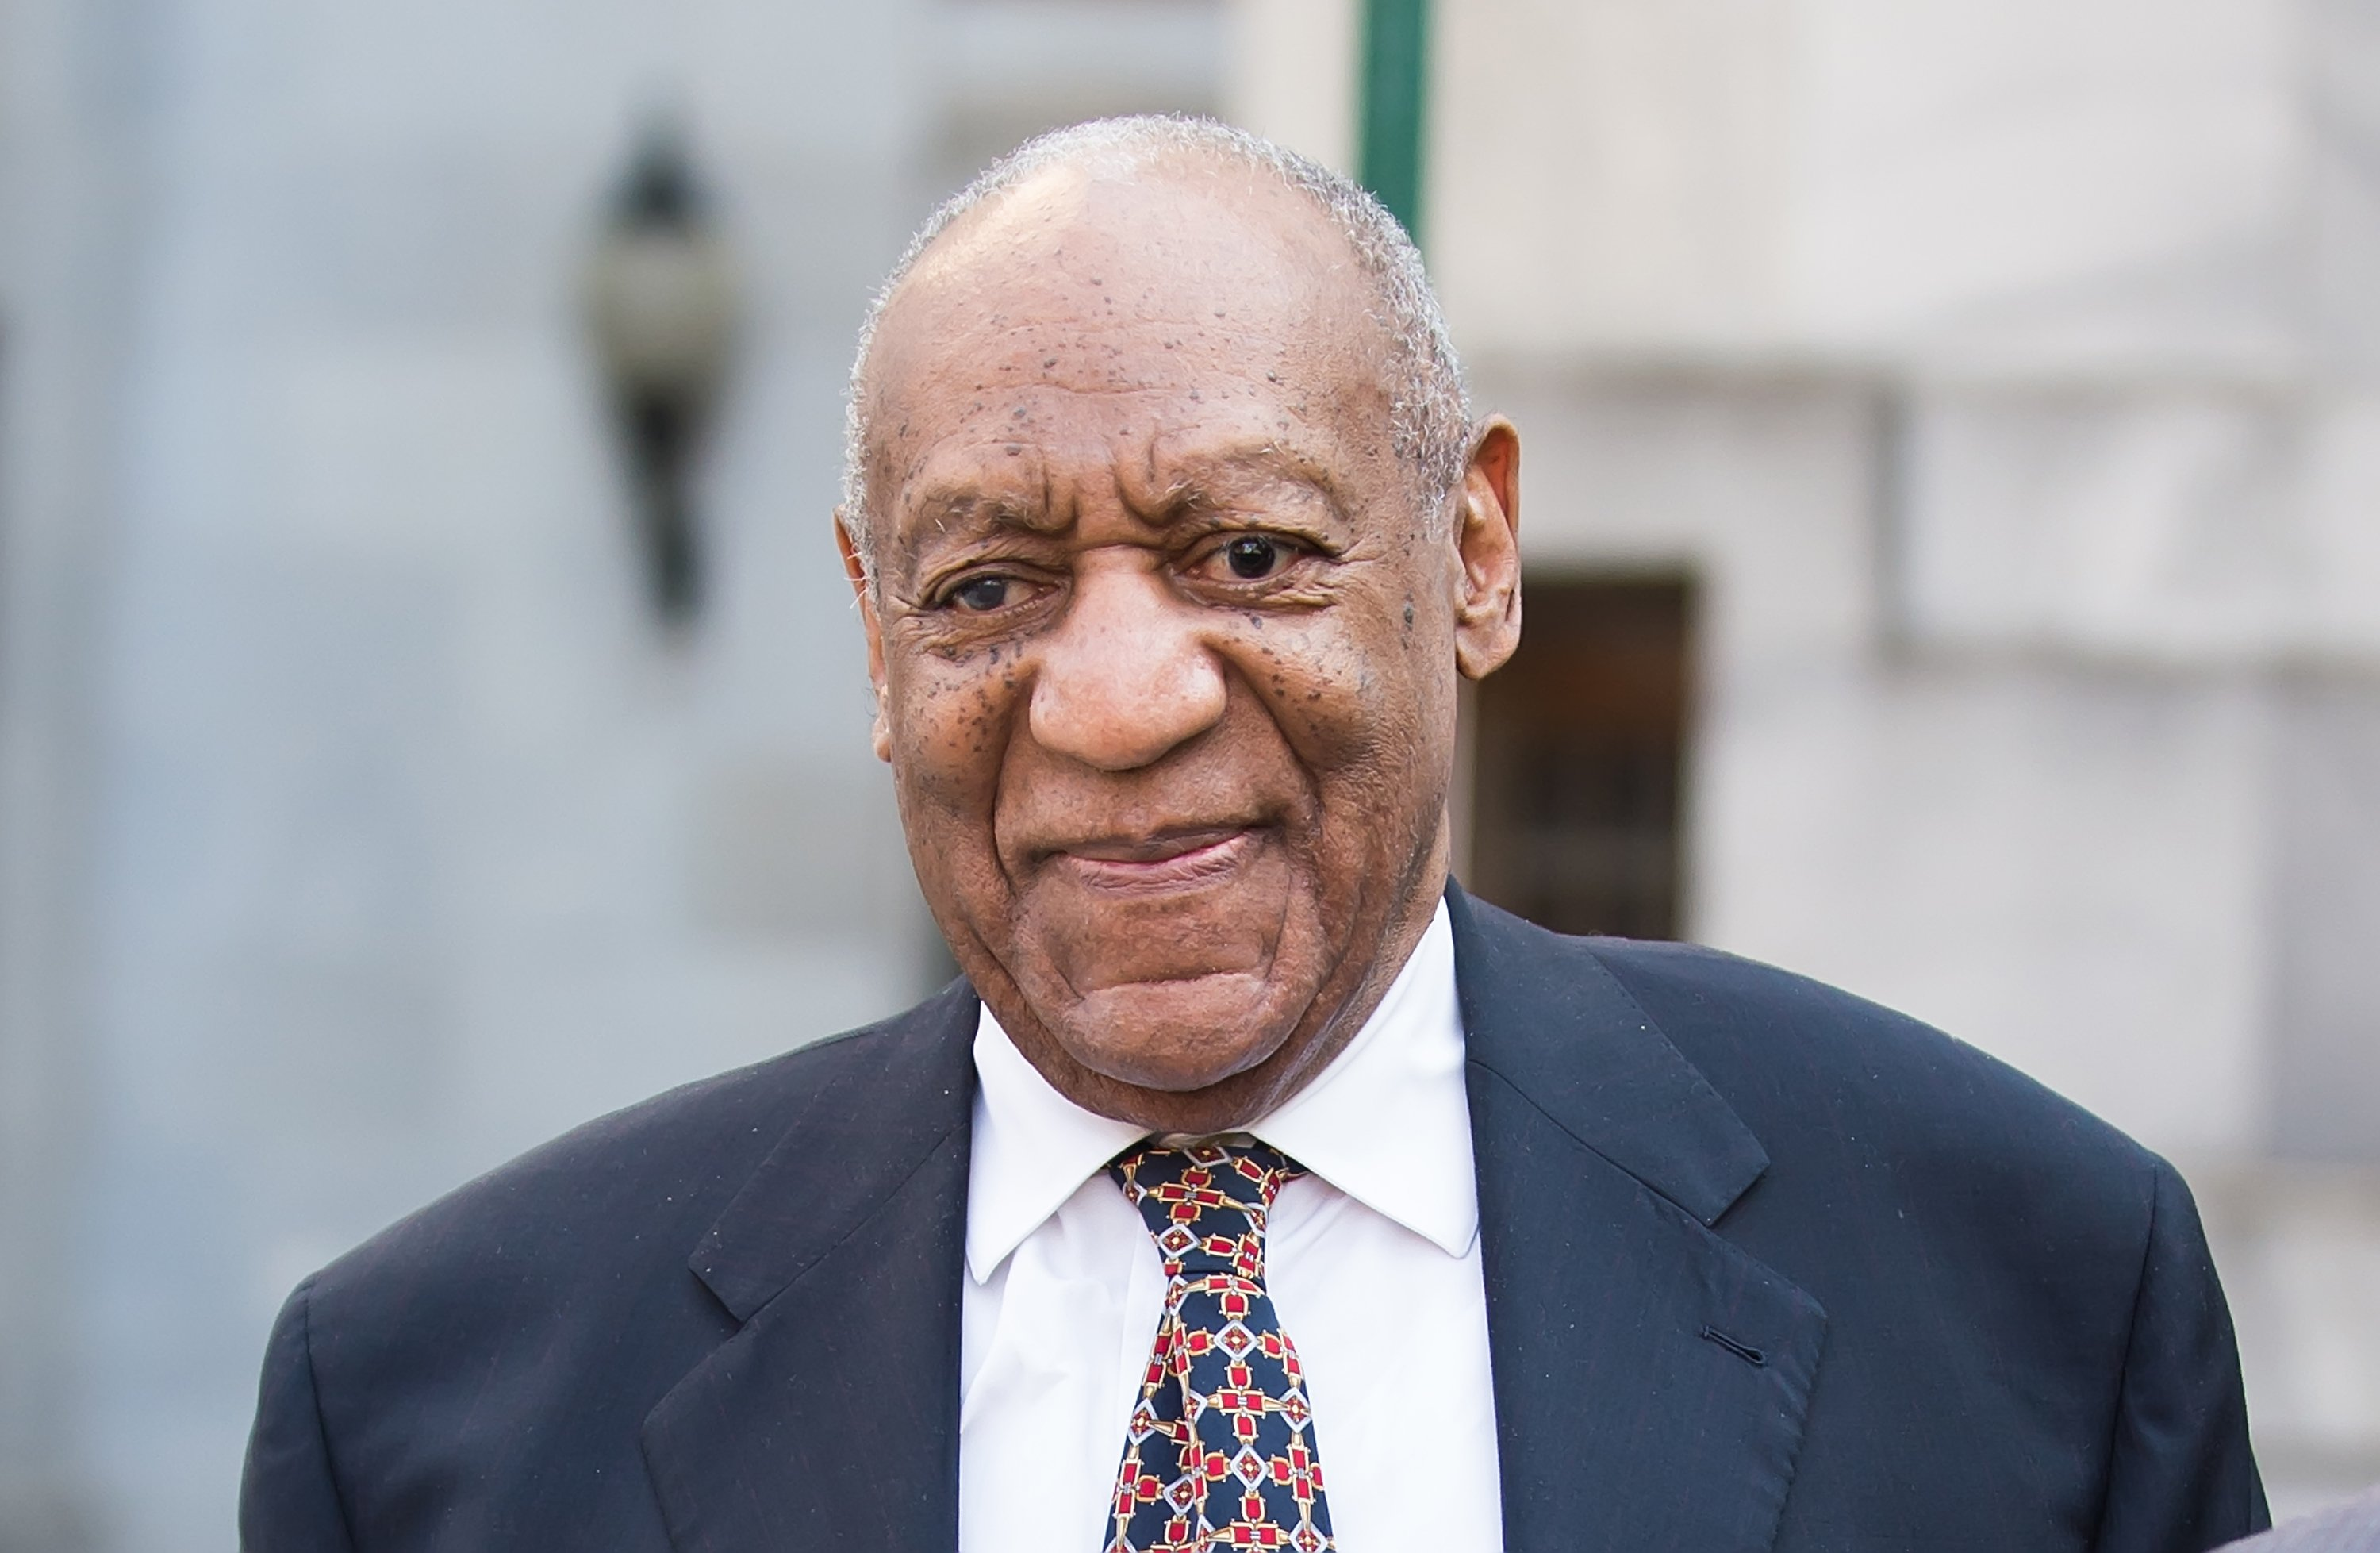 Bill Cosby at the Montgomery County Courthouse for the fifth day of his retrial for sexual assault charges on April 13, 2018. | Photo: Getty Images